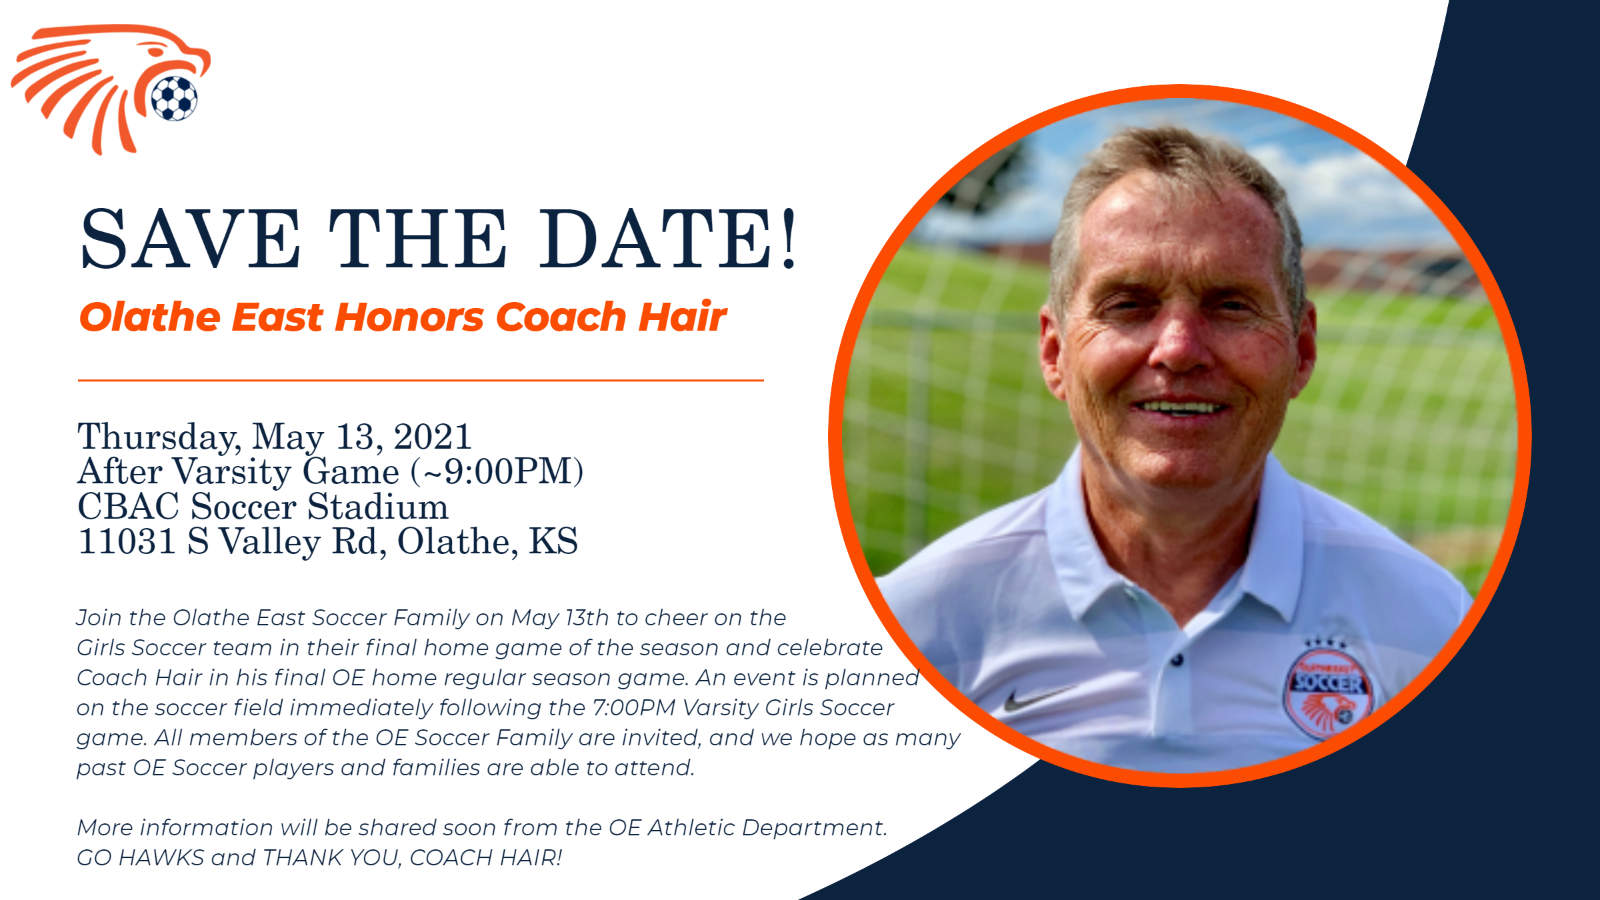 SAVE THE DATE! Olathe East Honors Coach Hair – May 13, 2021 @ CBAC